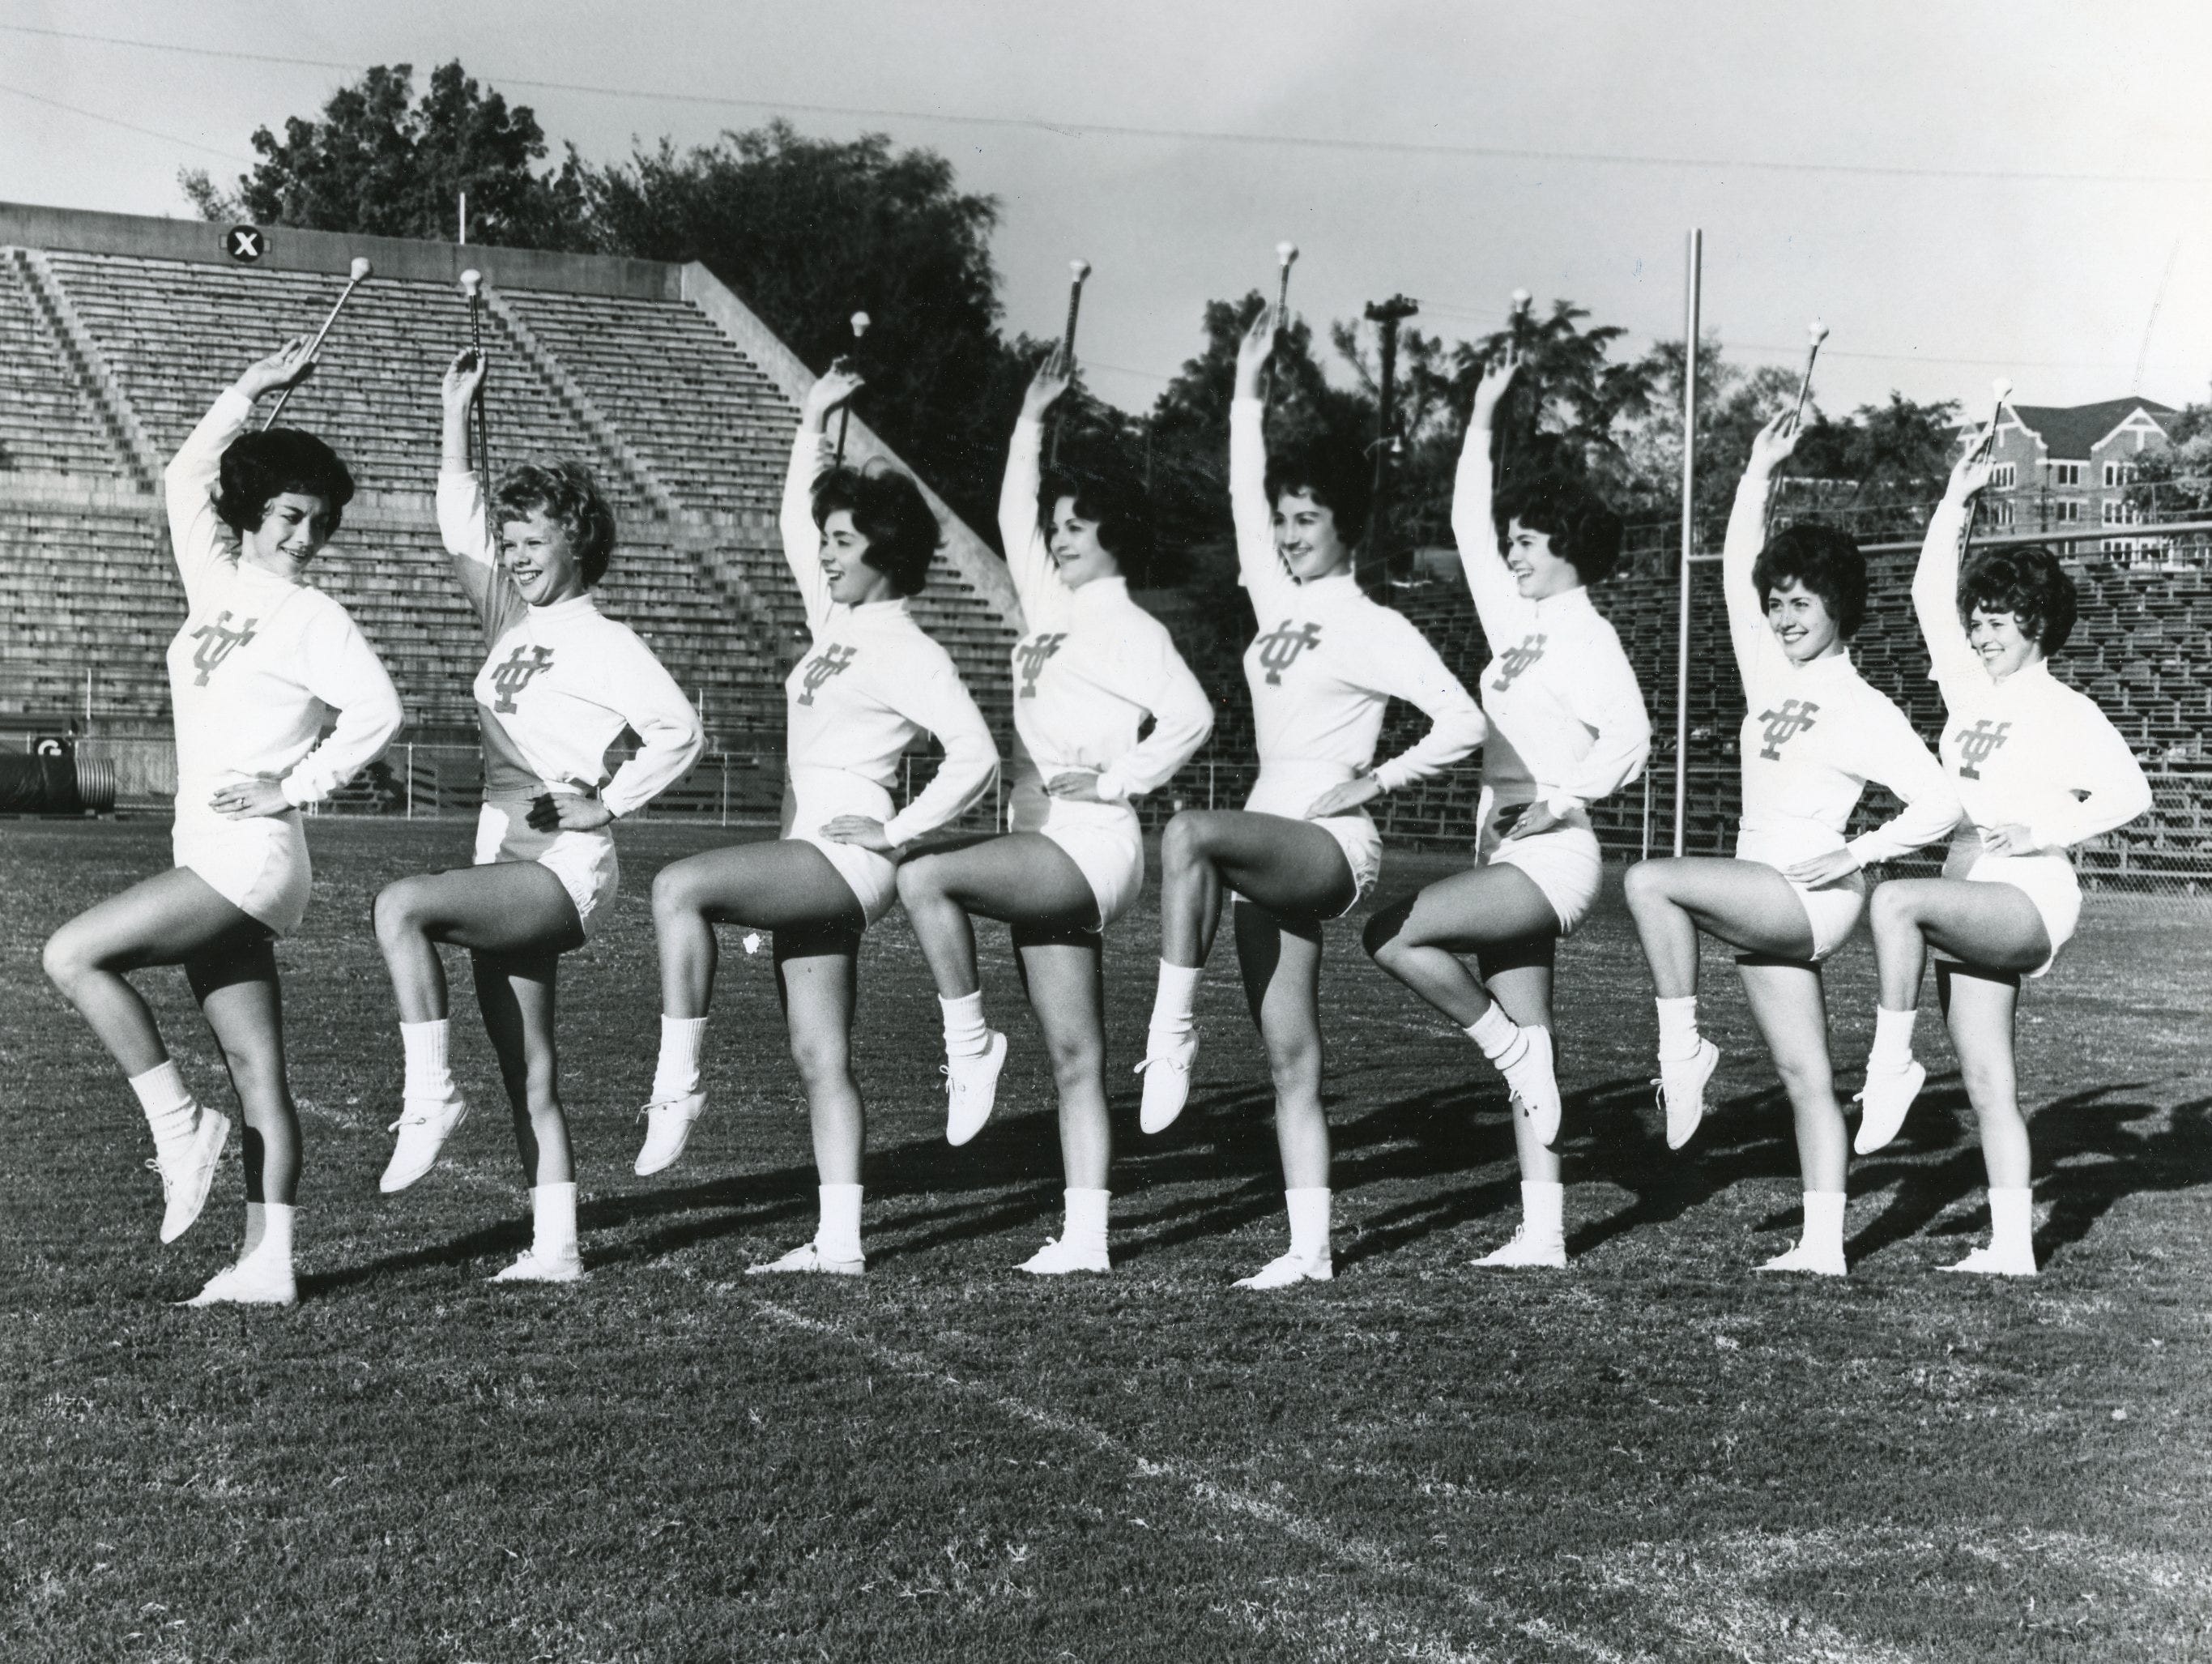 University of Tennessee majorettes for 1961 included Brenda Jo Smith, Mary Nicholson, Marcia Austin, Betty Sue Little, Claudette Riley, Bette Carlson, Ann Dafferner, Marlene Bagwell. Not pictured is DeAnn Smith.